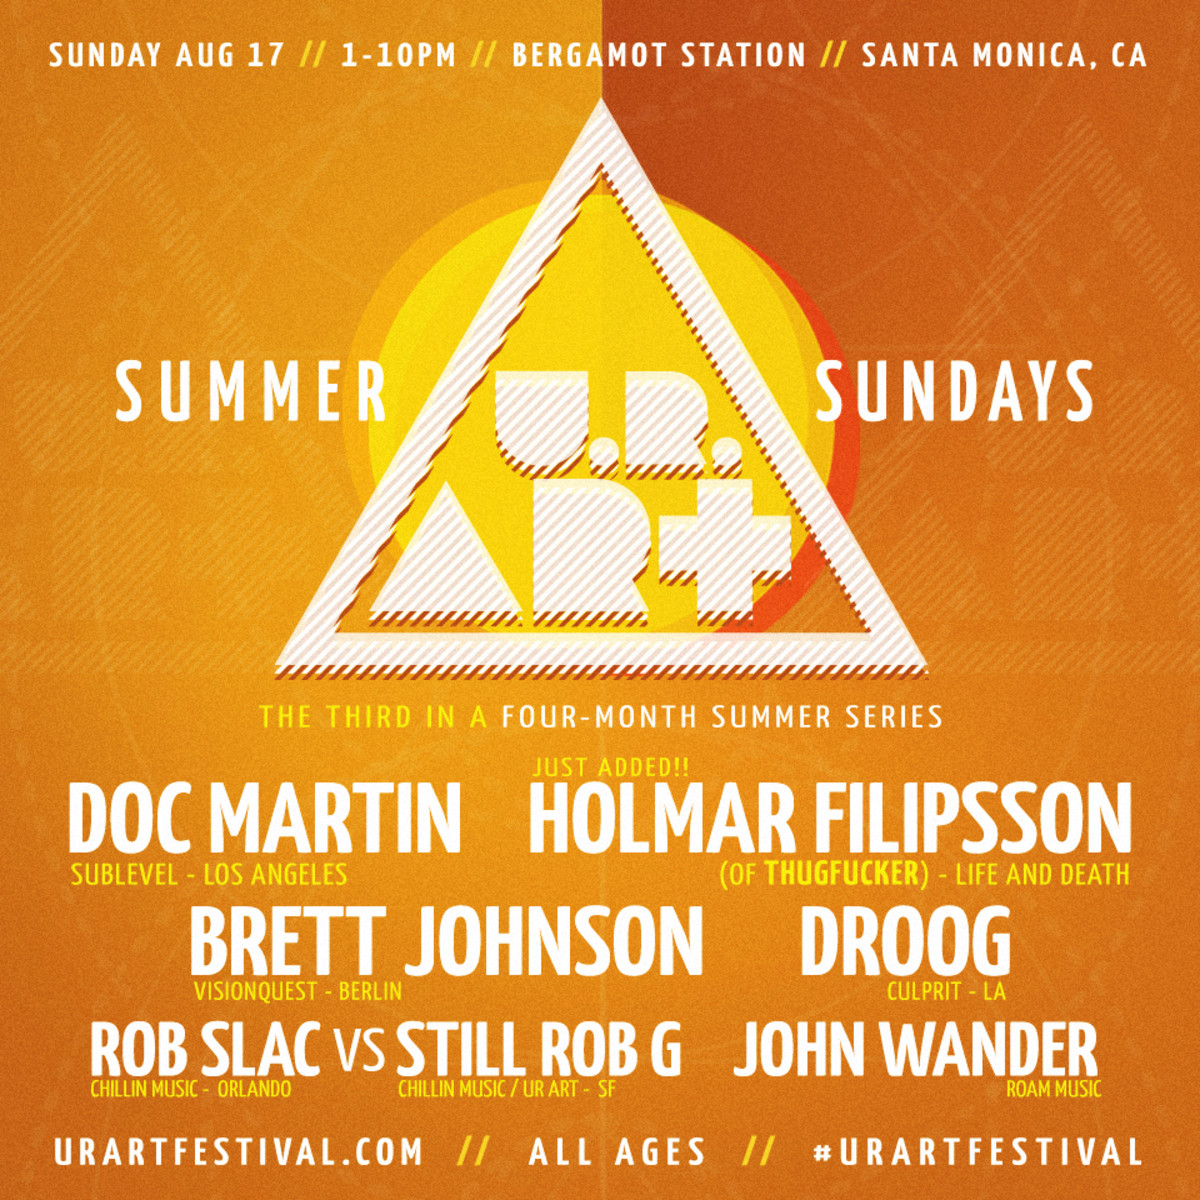 Los Angeles - U.R. Art - Sunday, August 17th With Doc Martin